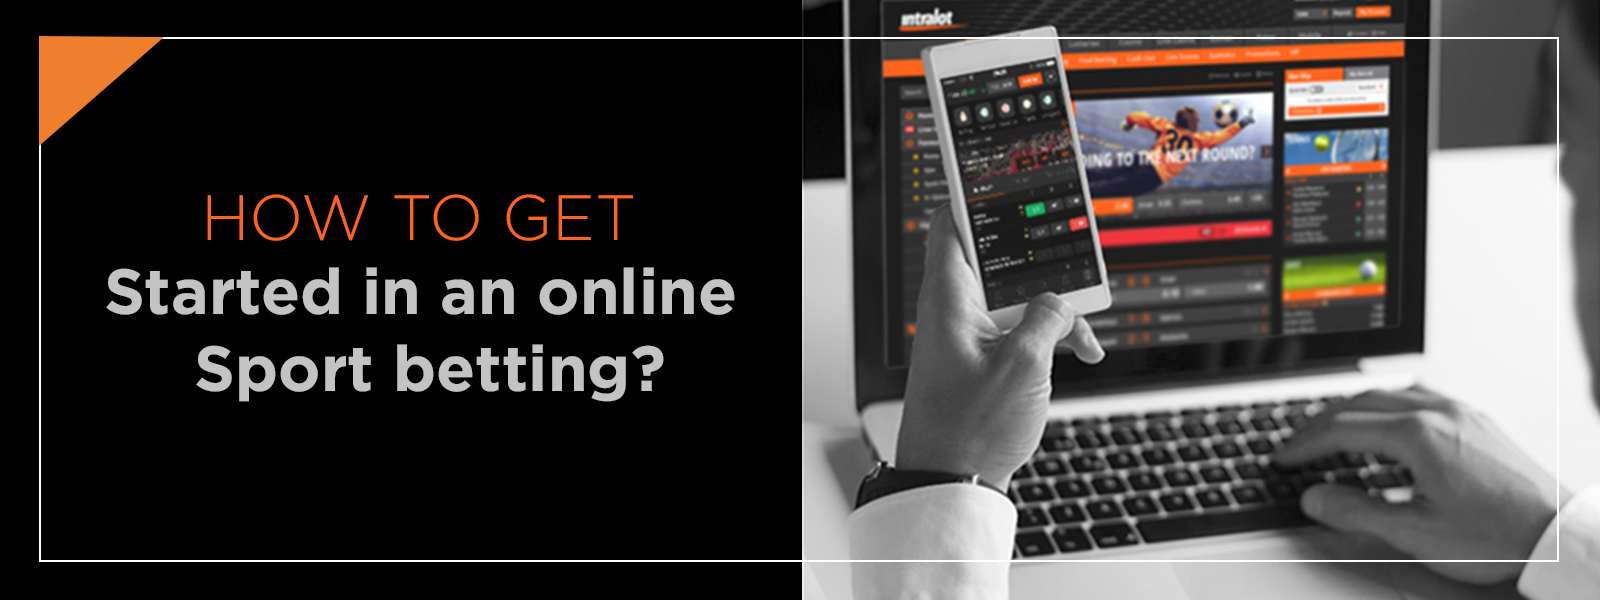 How To Get Started In Online Sports Betting?